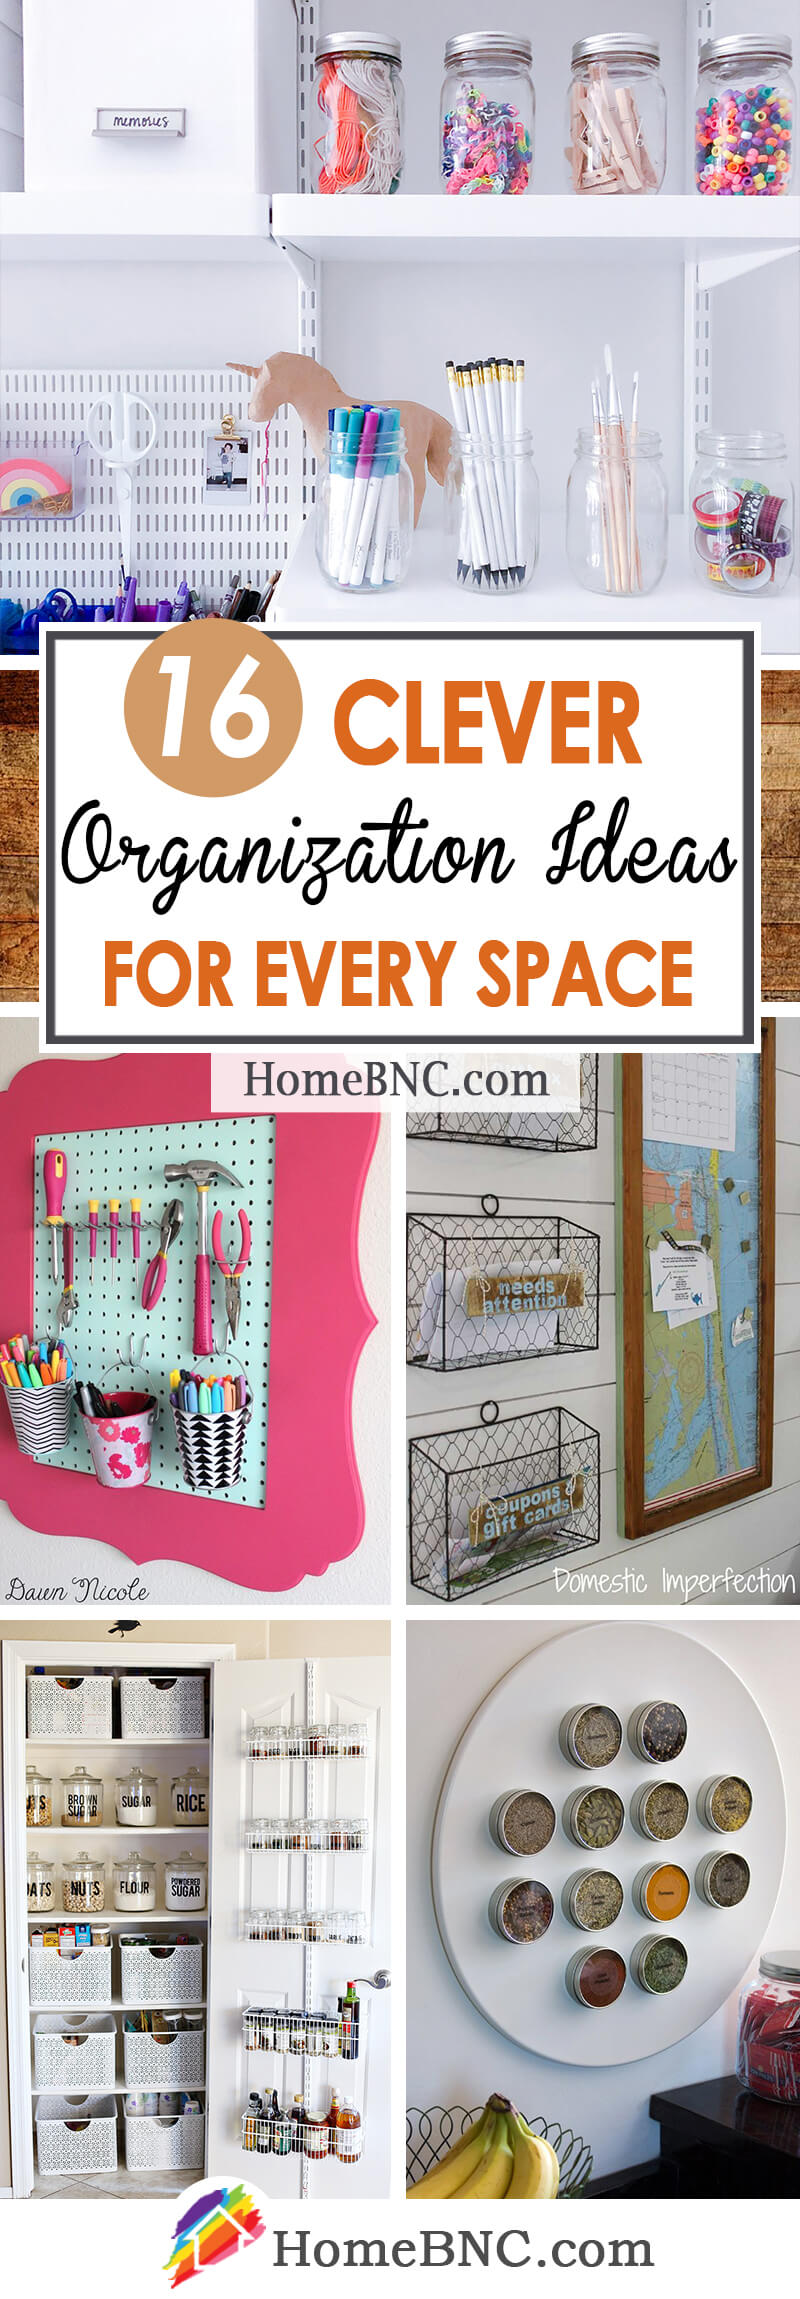 Organization Ideas for Every Space